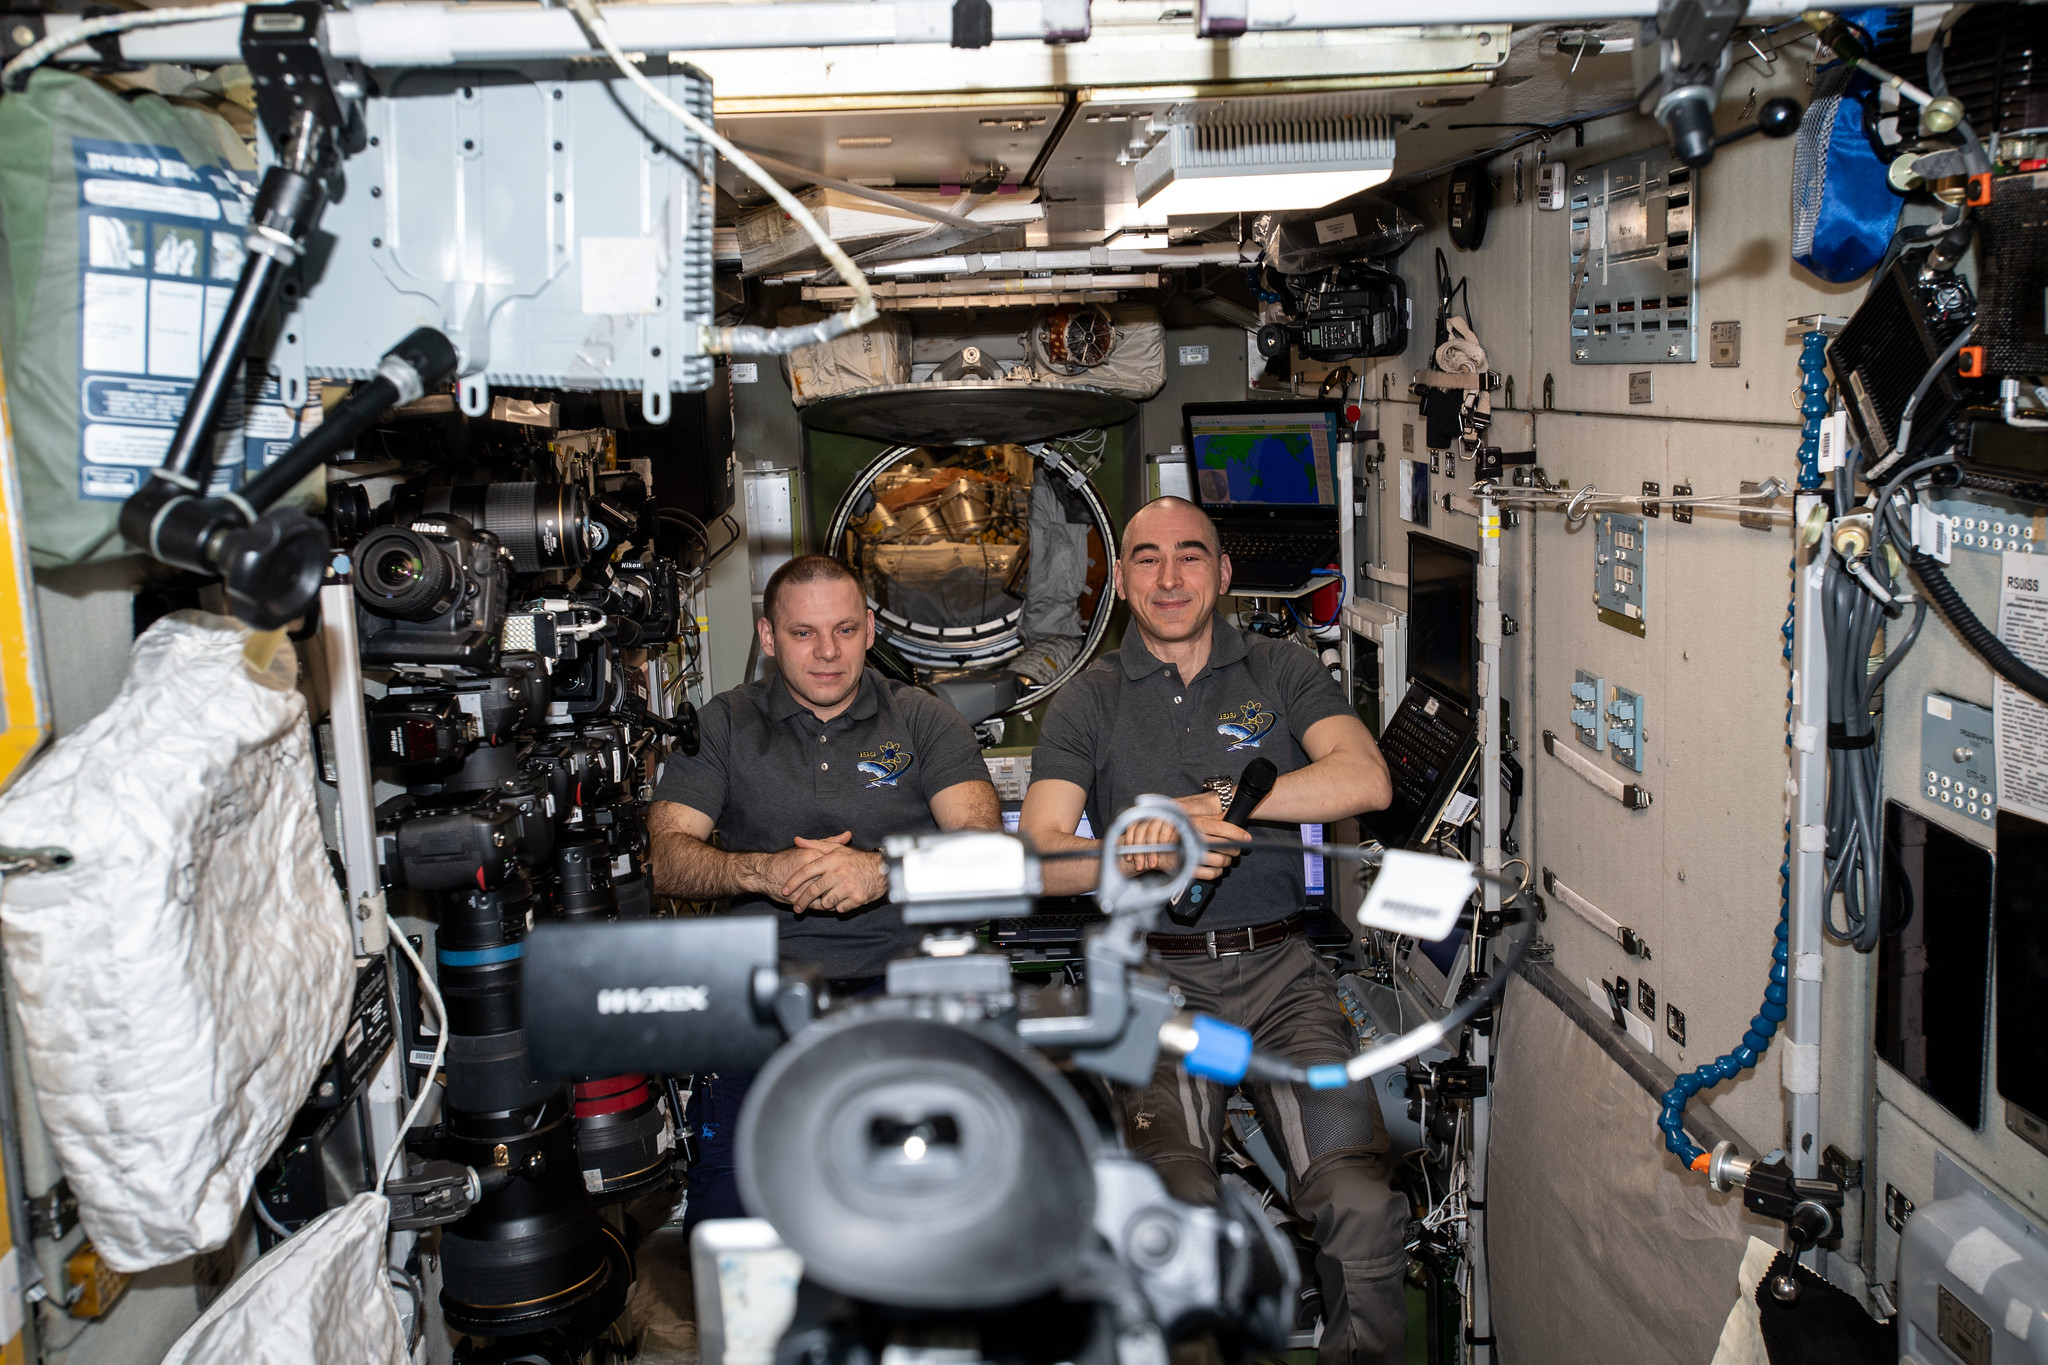 Progress to aid Benzene investigation on ISS